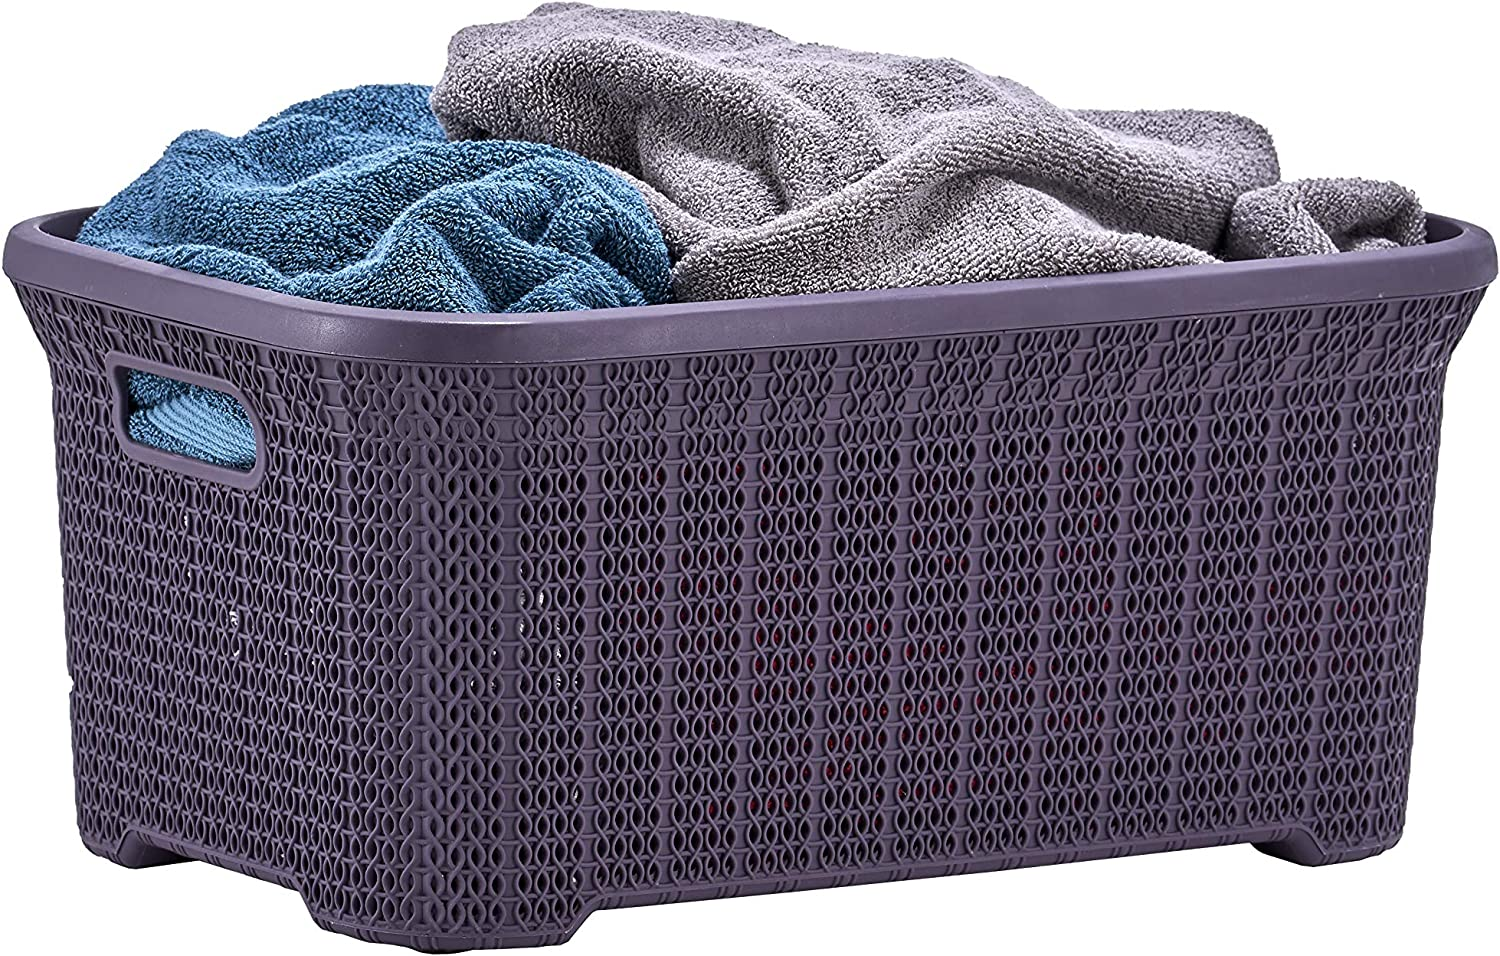 Superio Laundry Max 83% OFF Basket Knit Style Superior Cut Handles Out with